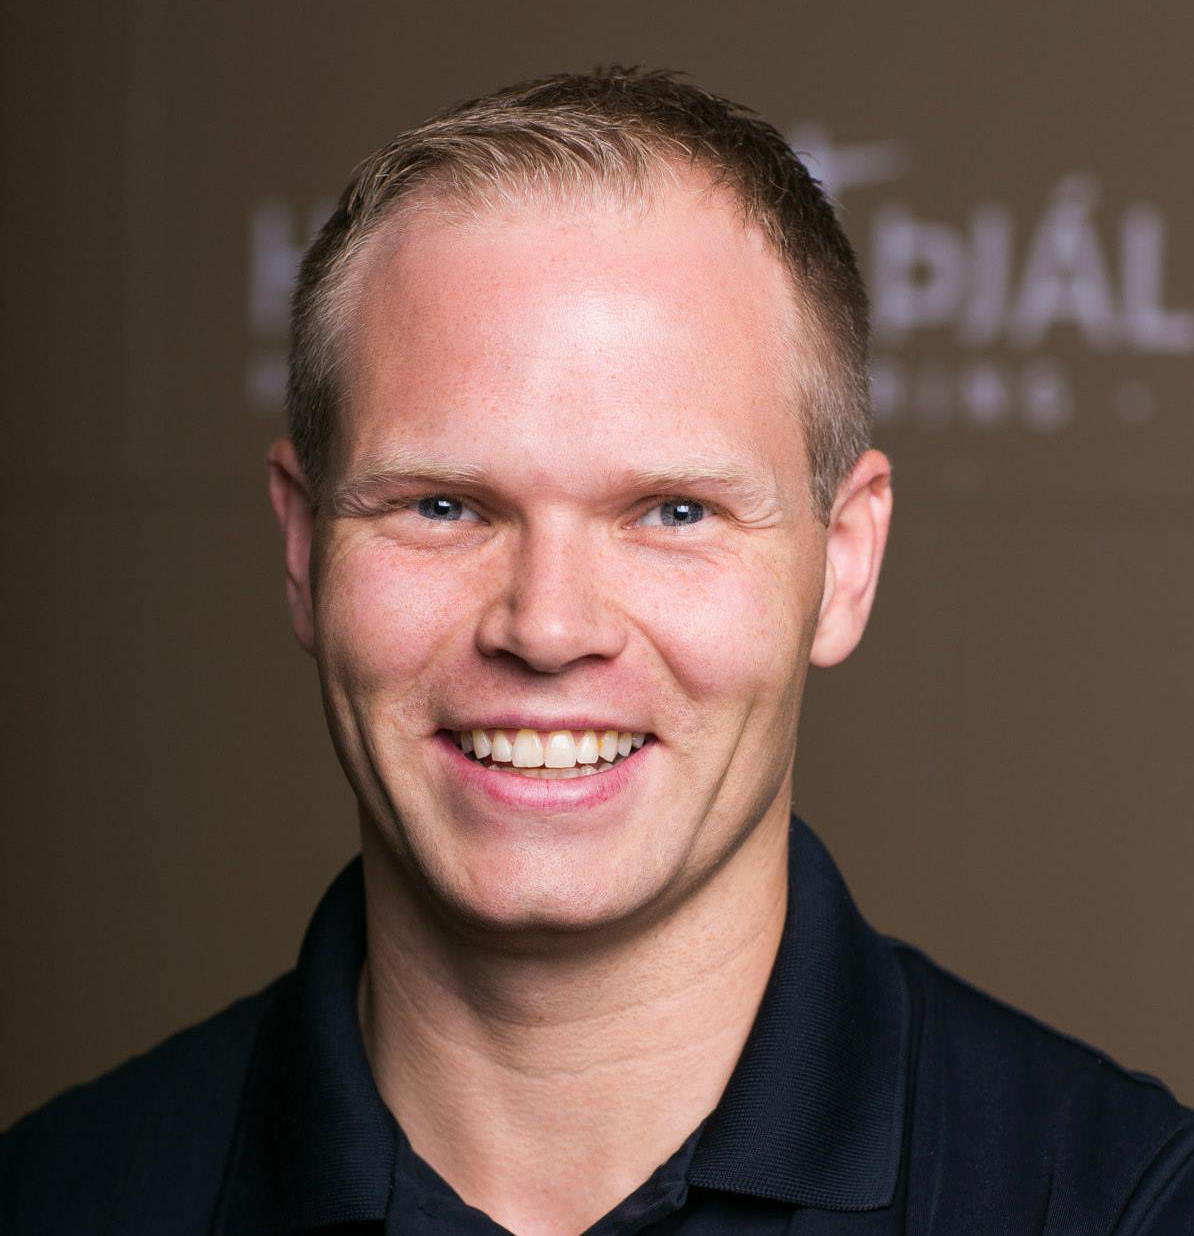 David Kristinsson, health coach, entrepreneur, owner of Heilsuthjalfun.is, 30.is and author of